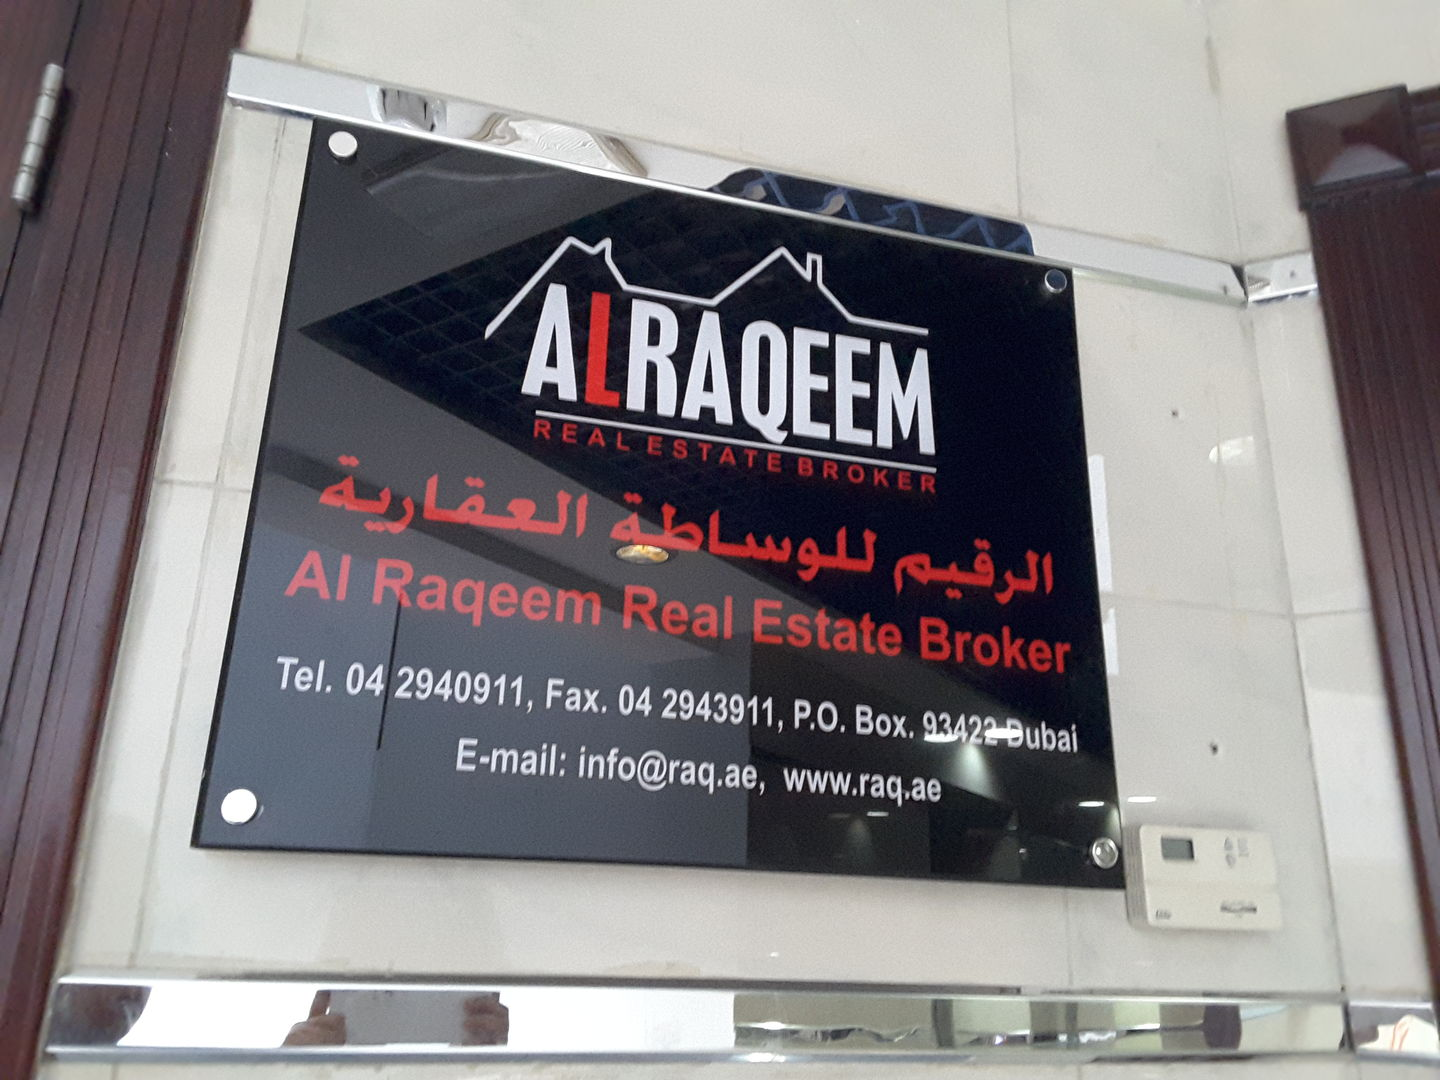 HiDubai-business-al-raqeem-real-estate-broker-housing-real-estate-real-estate-agencies-riggat-al-buteen-dubai-2